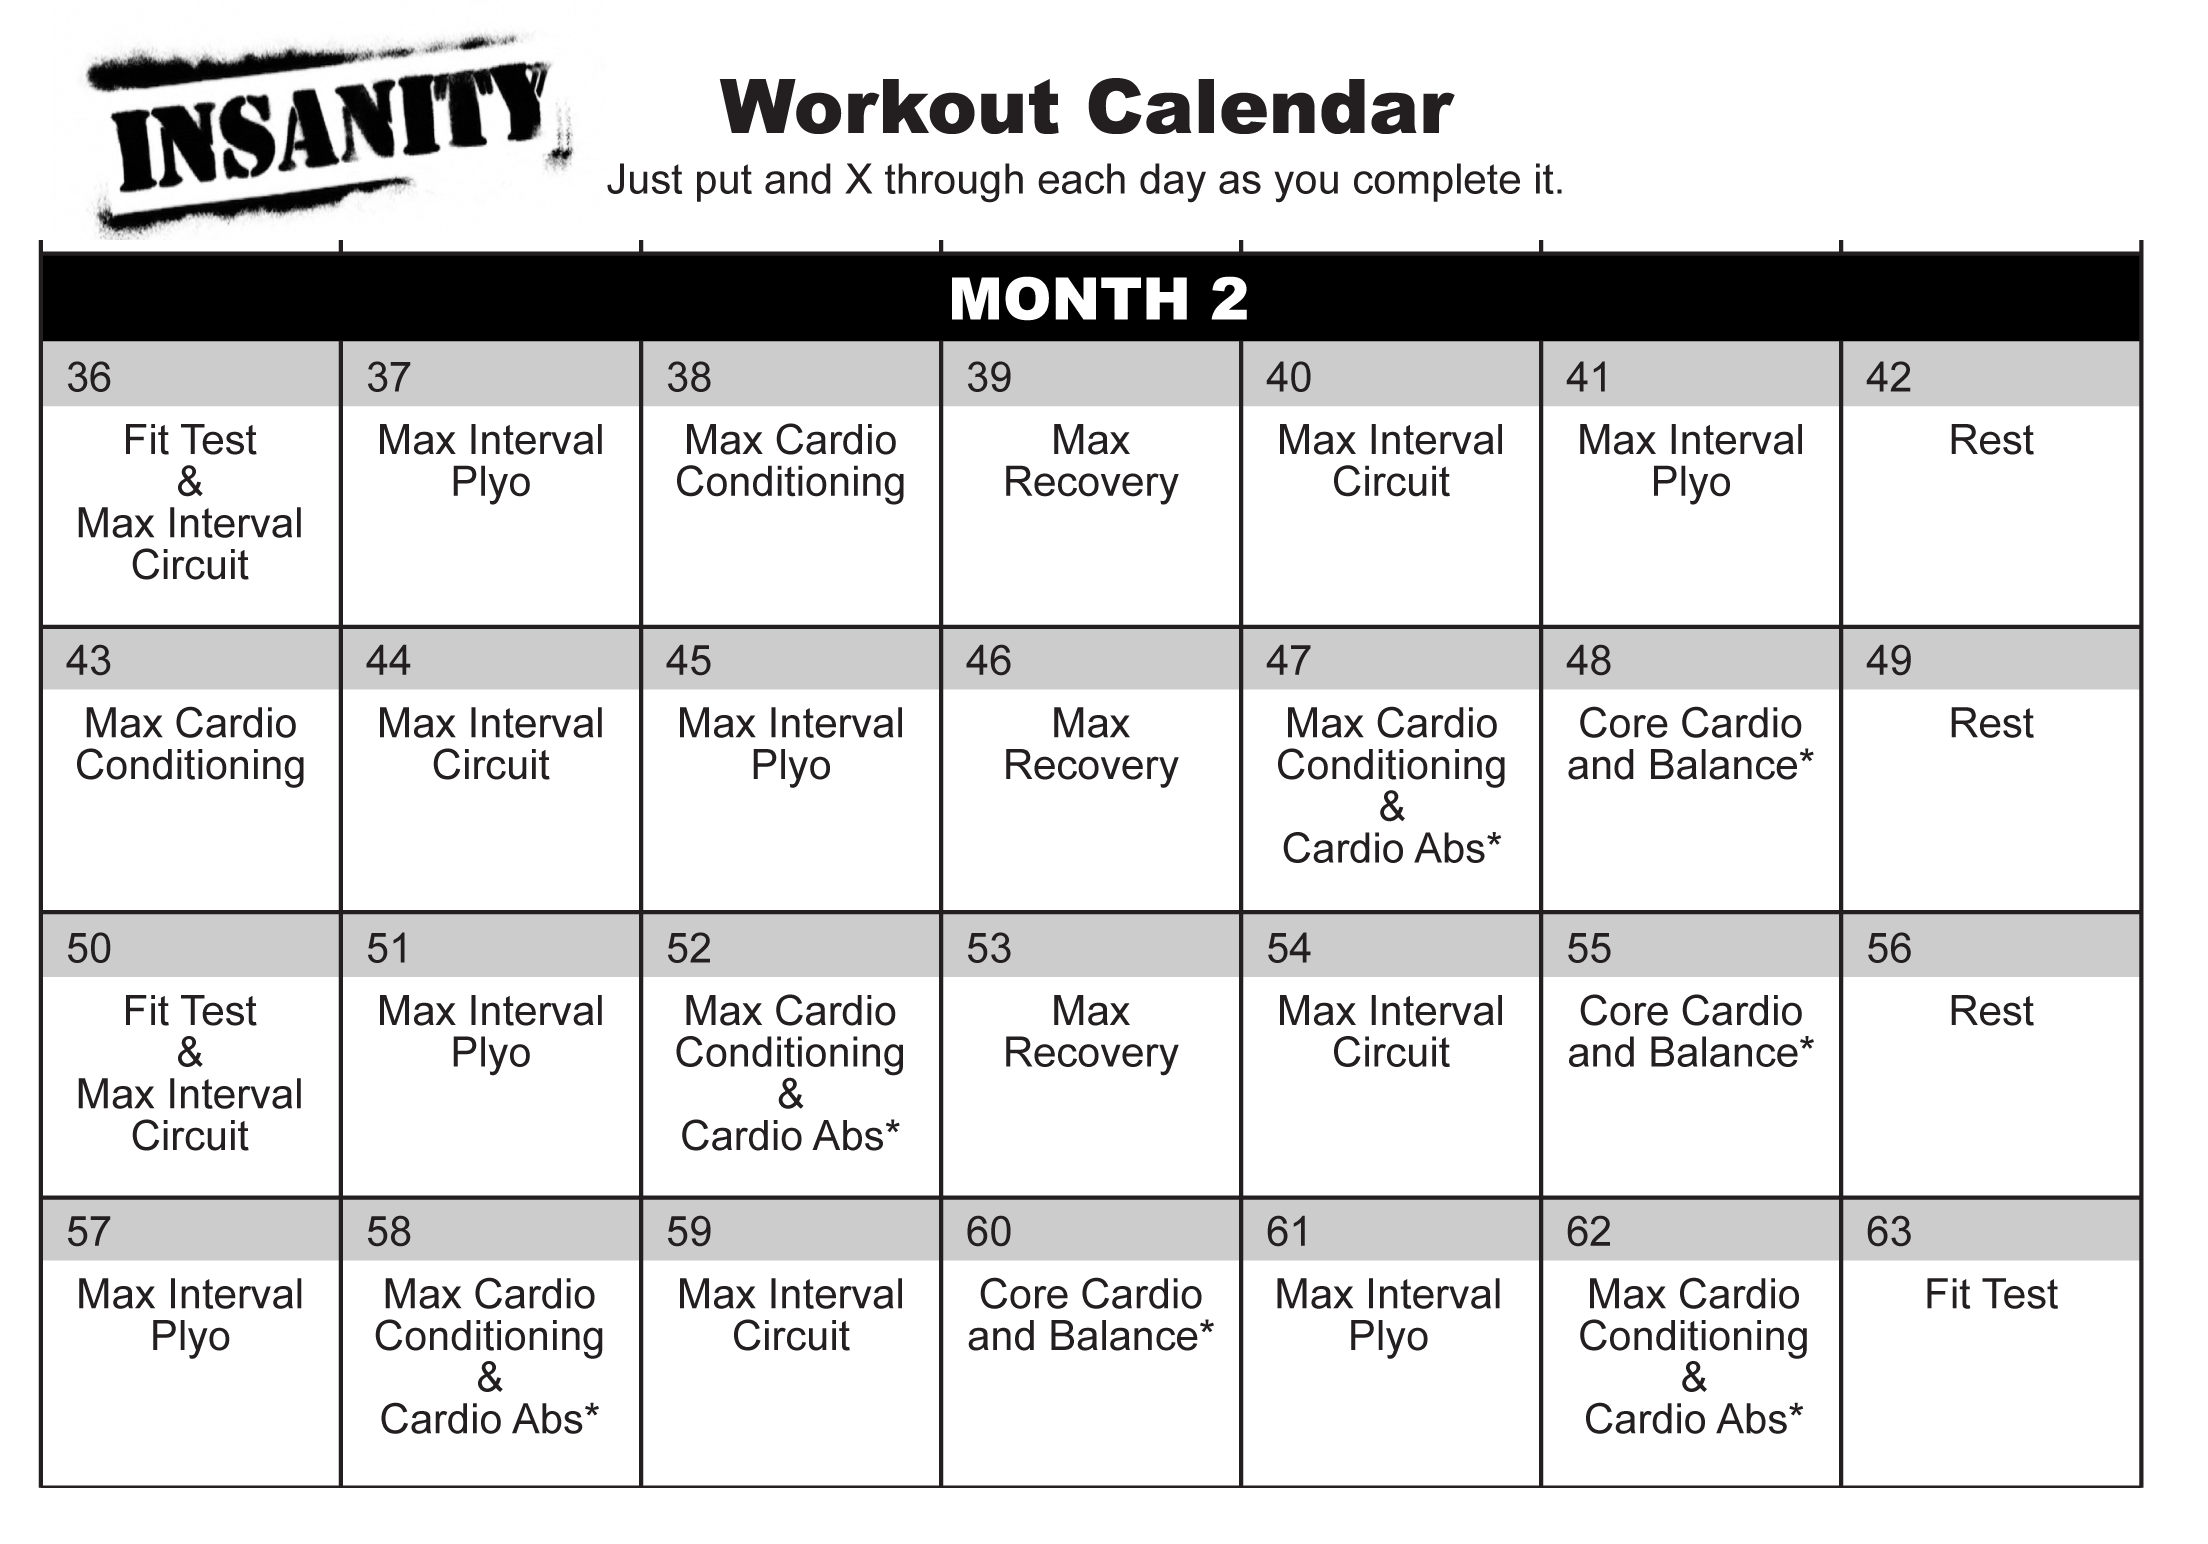 InsanityCalendar 1.png